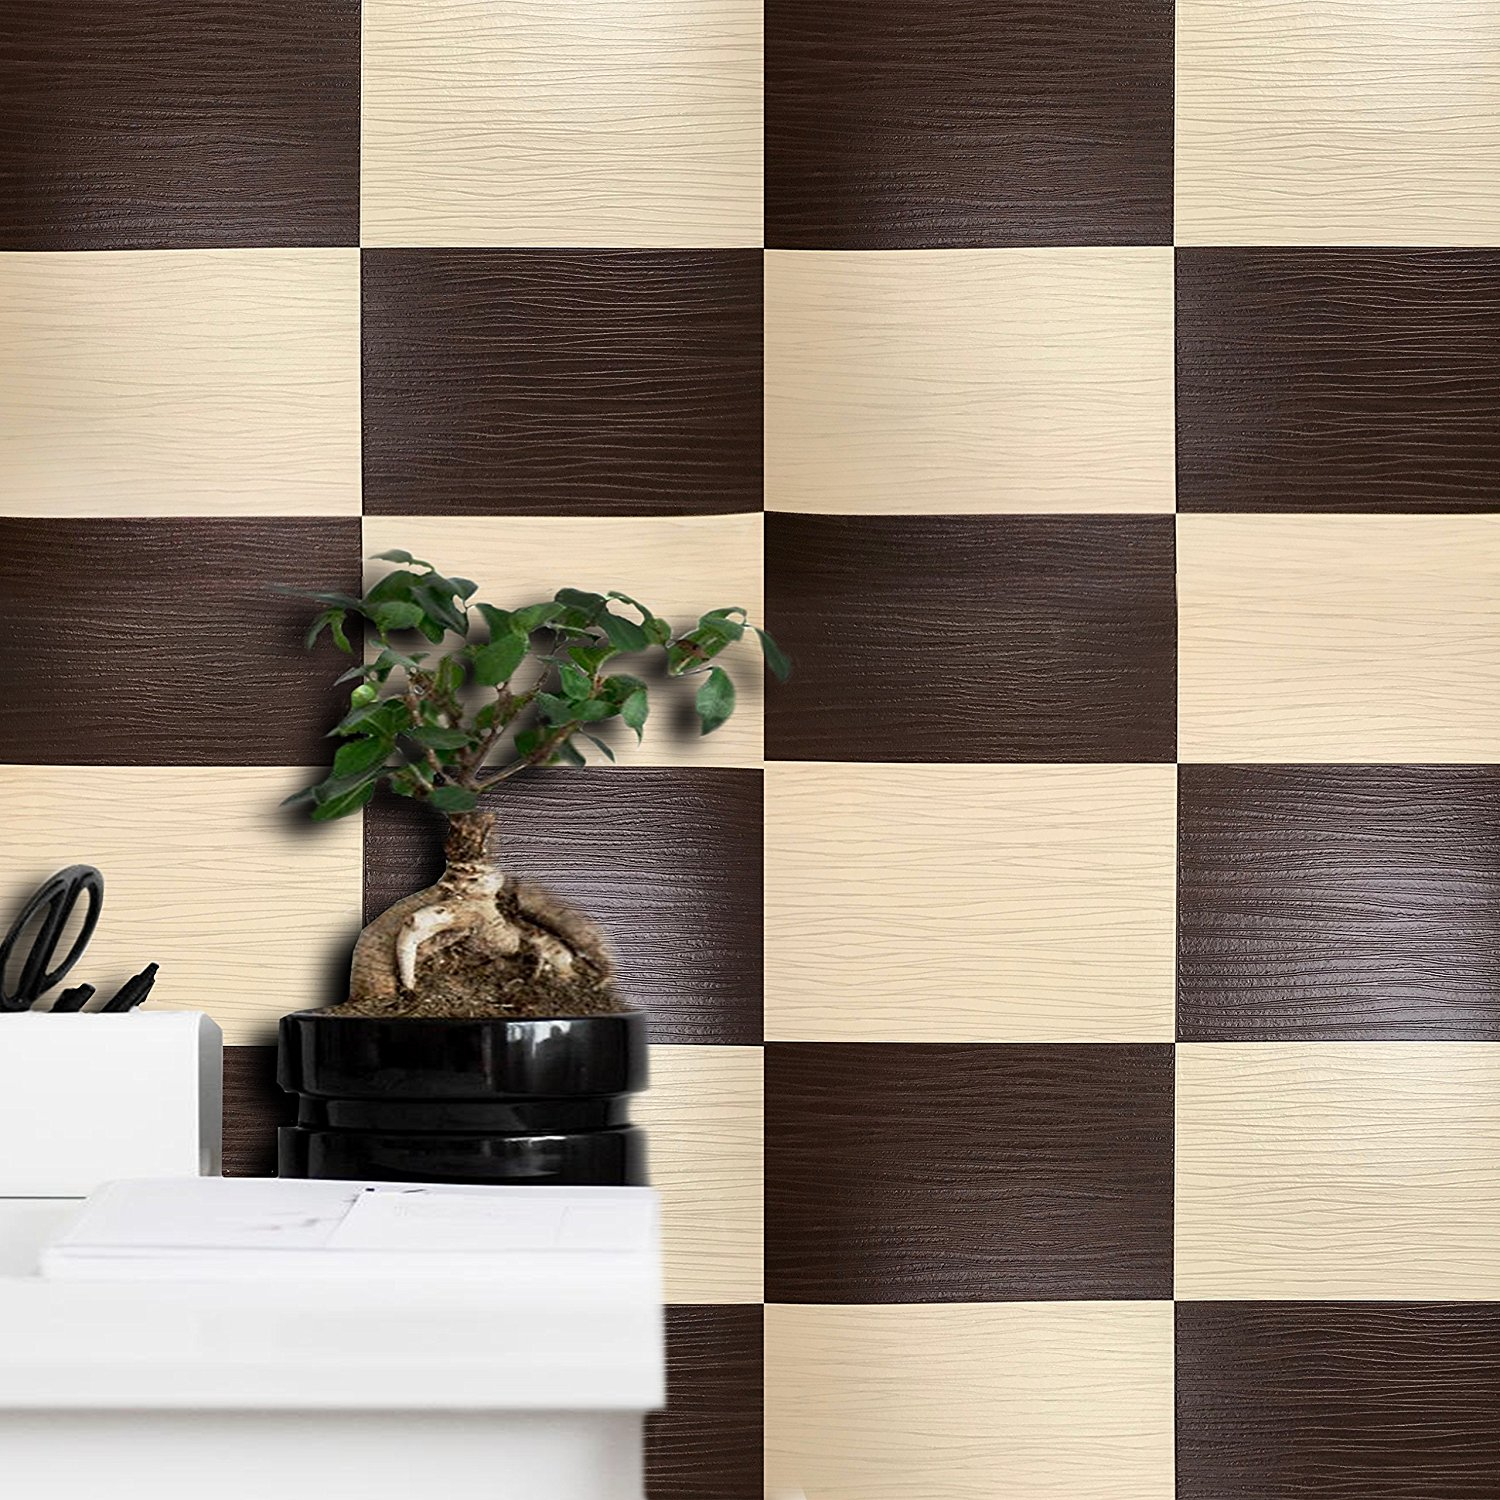 Slavyanski European vinyl wallpaper textured faux leather imitation modern wallcoverings double rolls patterned coverings textures wall decor 3D modern tiles pattern brown & beige tile 3D vintage styl